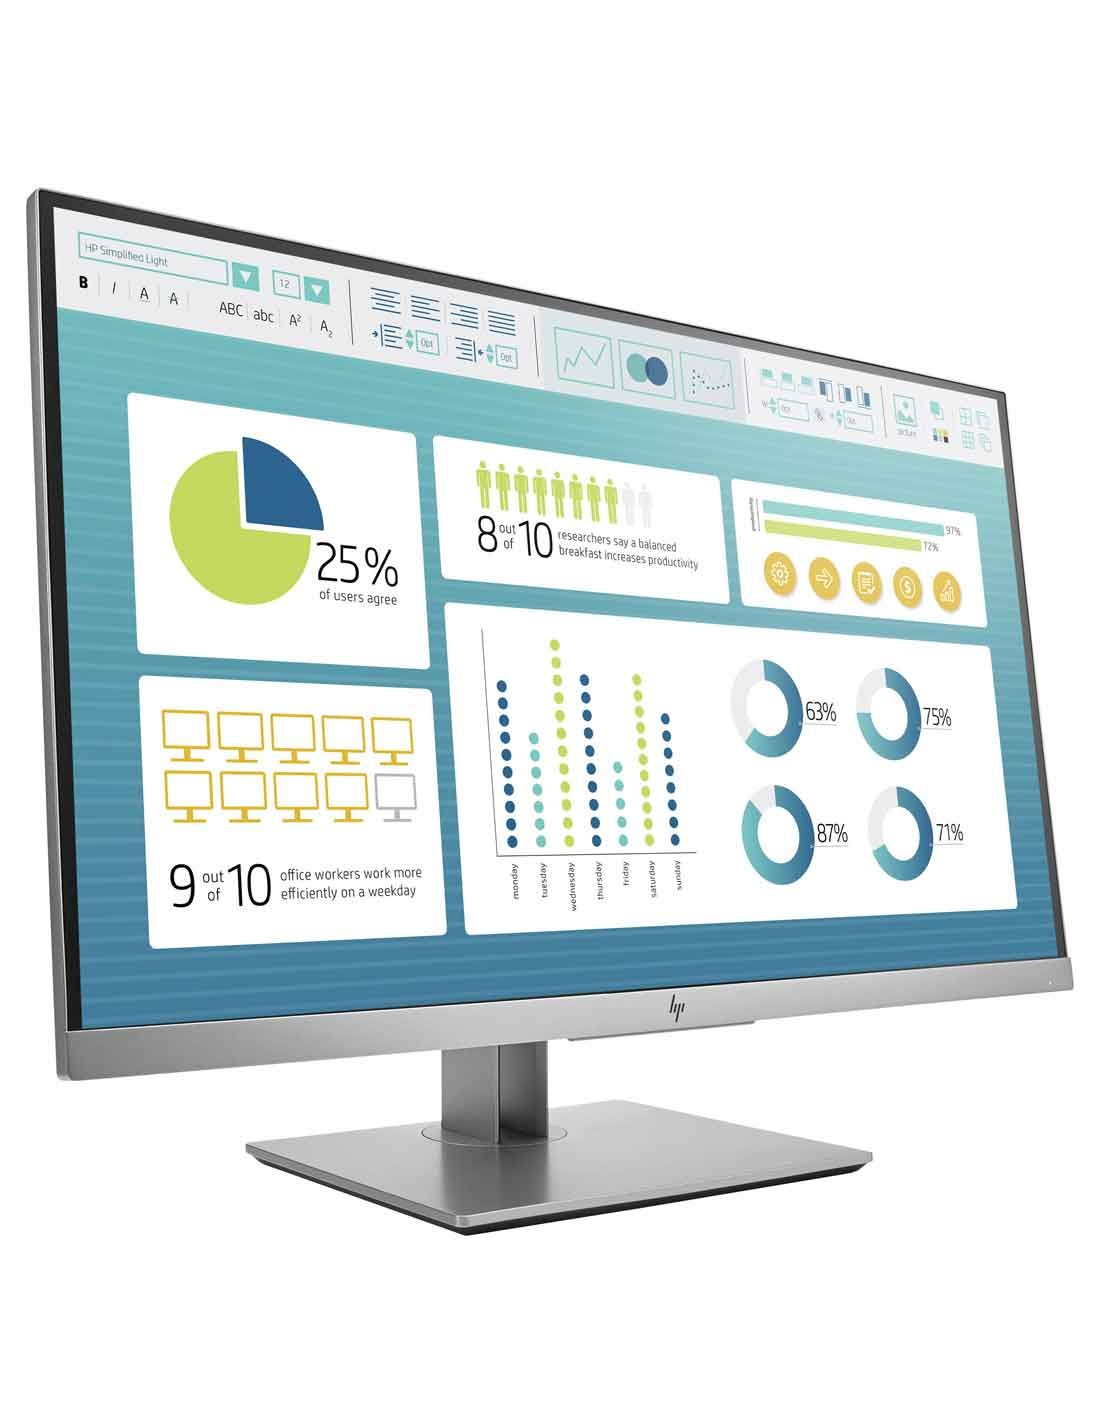 HP EliteDisplay E273 27-inch Monitor at the cheapest price and fast free delivery in Dubai